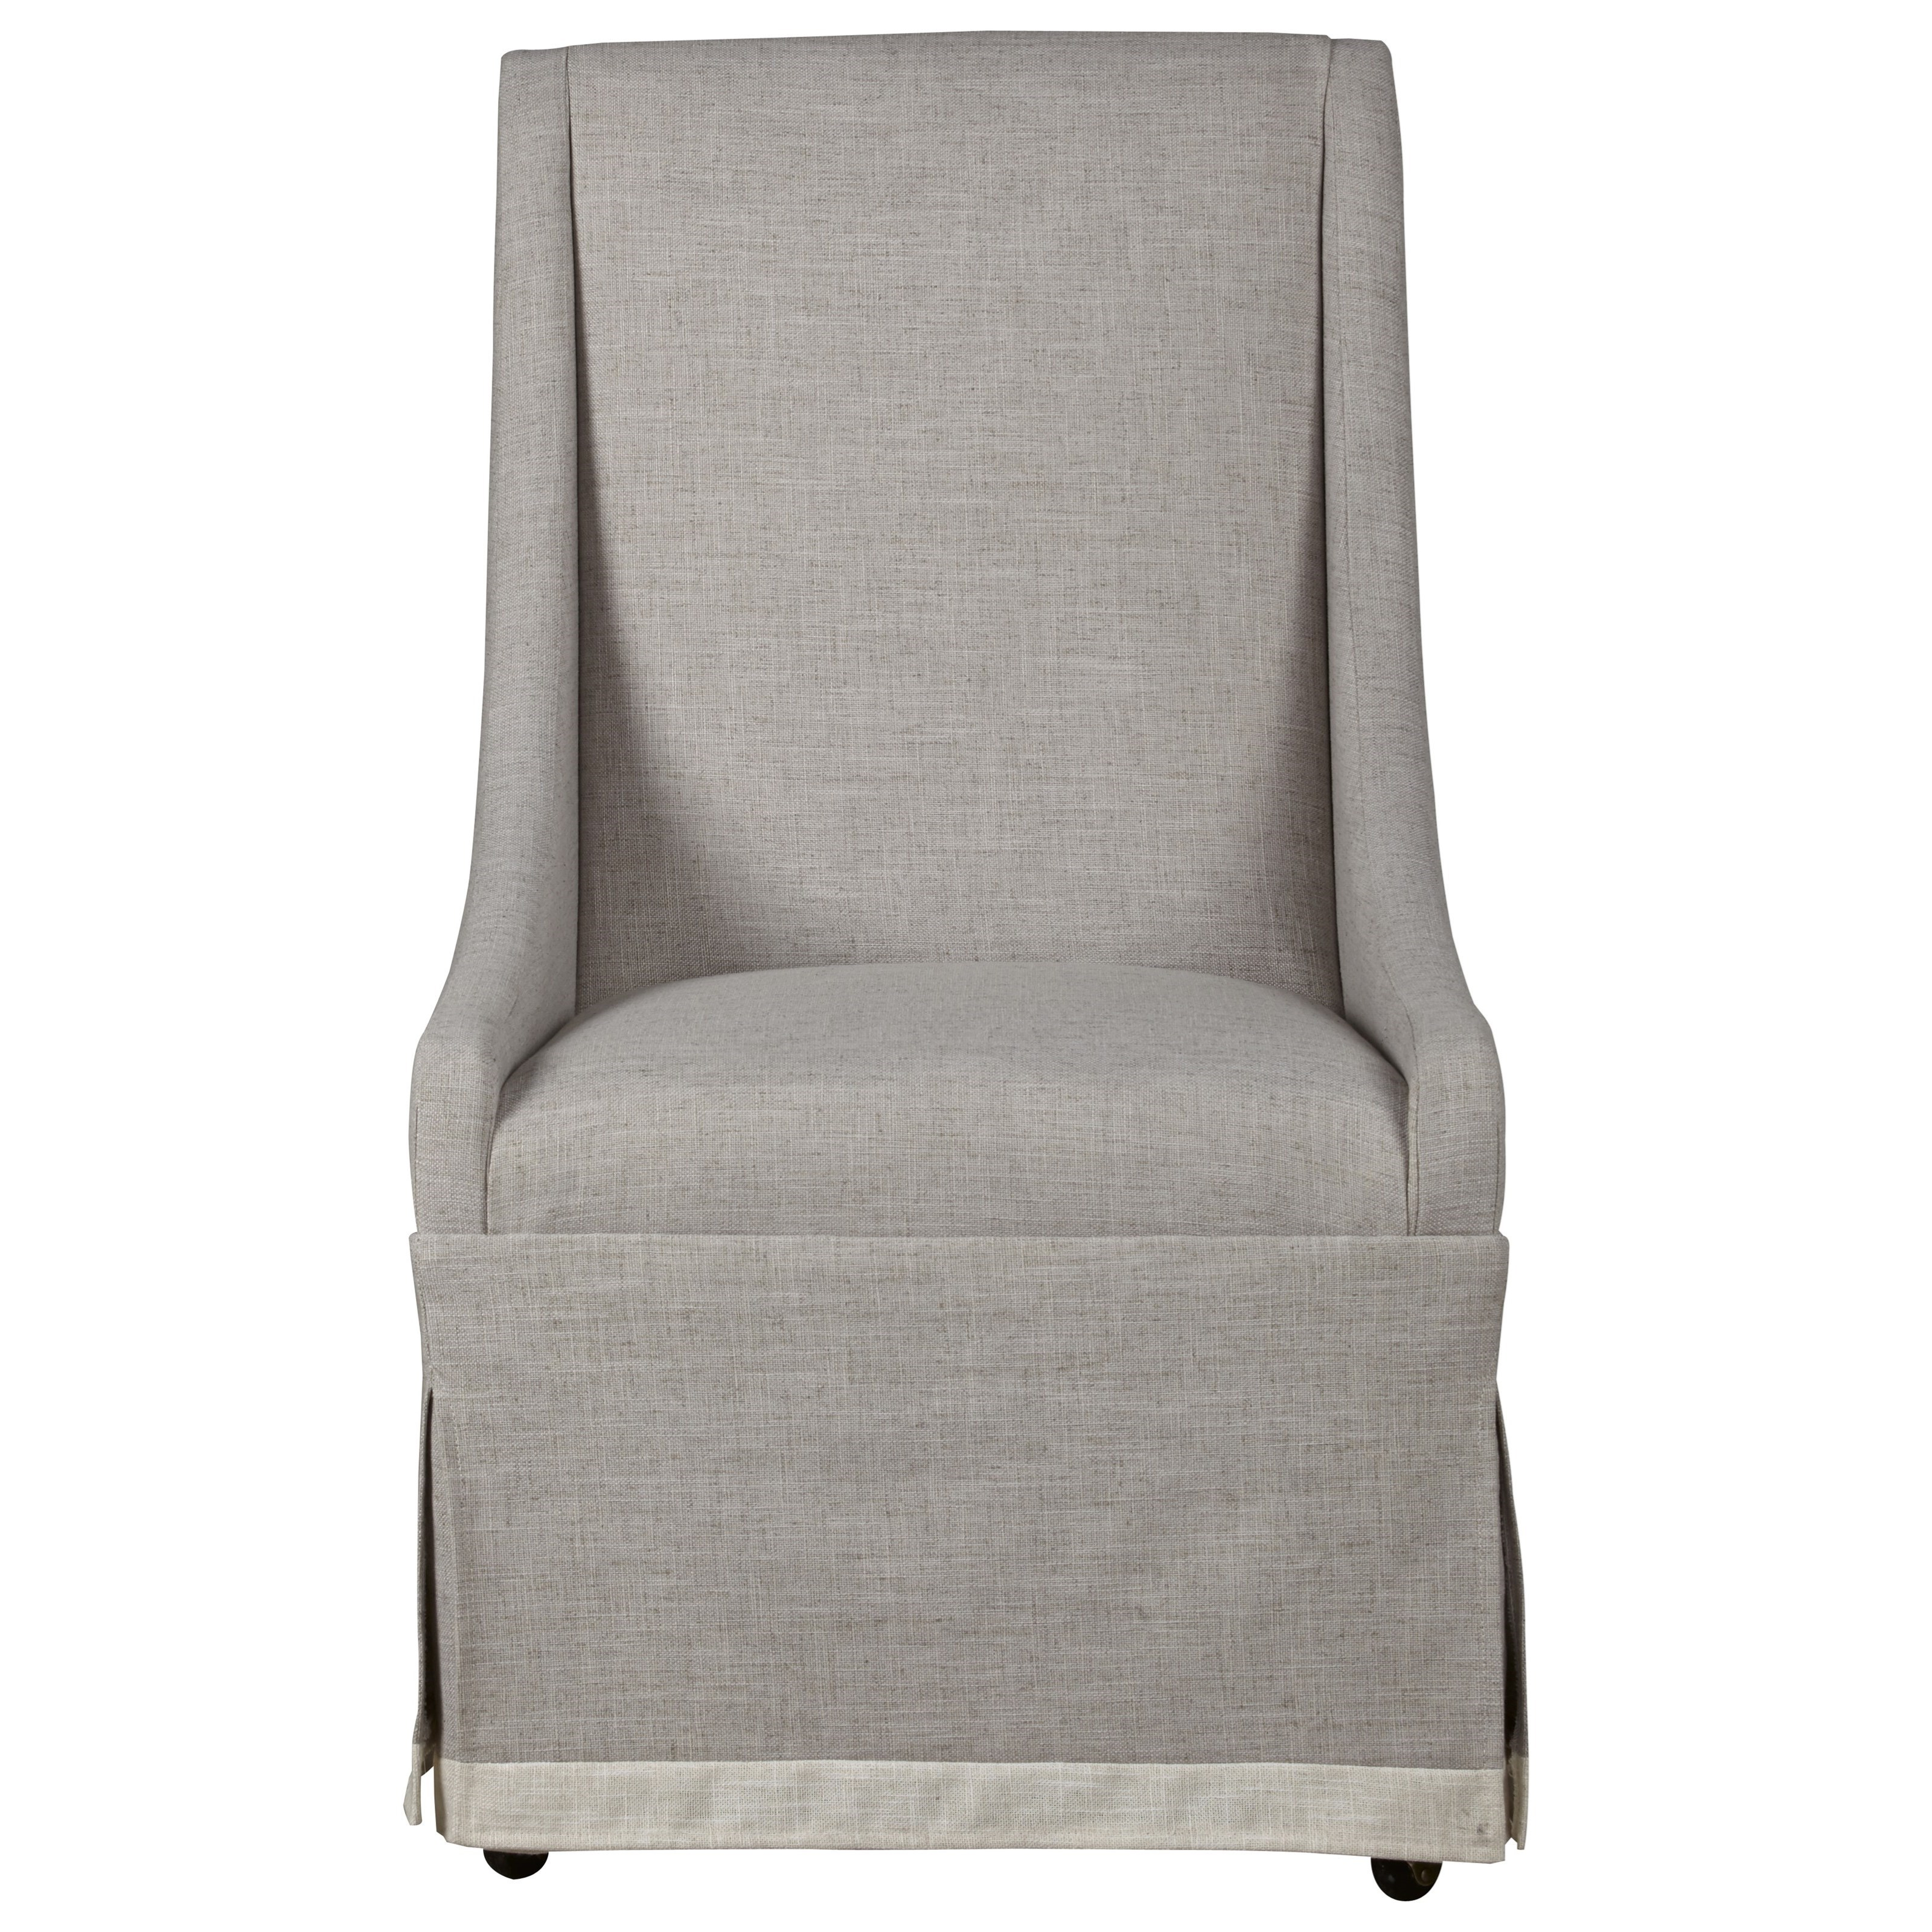 Paula Deen by Universal Bungalow Host Chair - Item Number: 795637